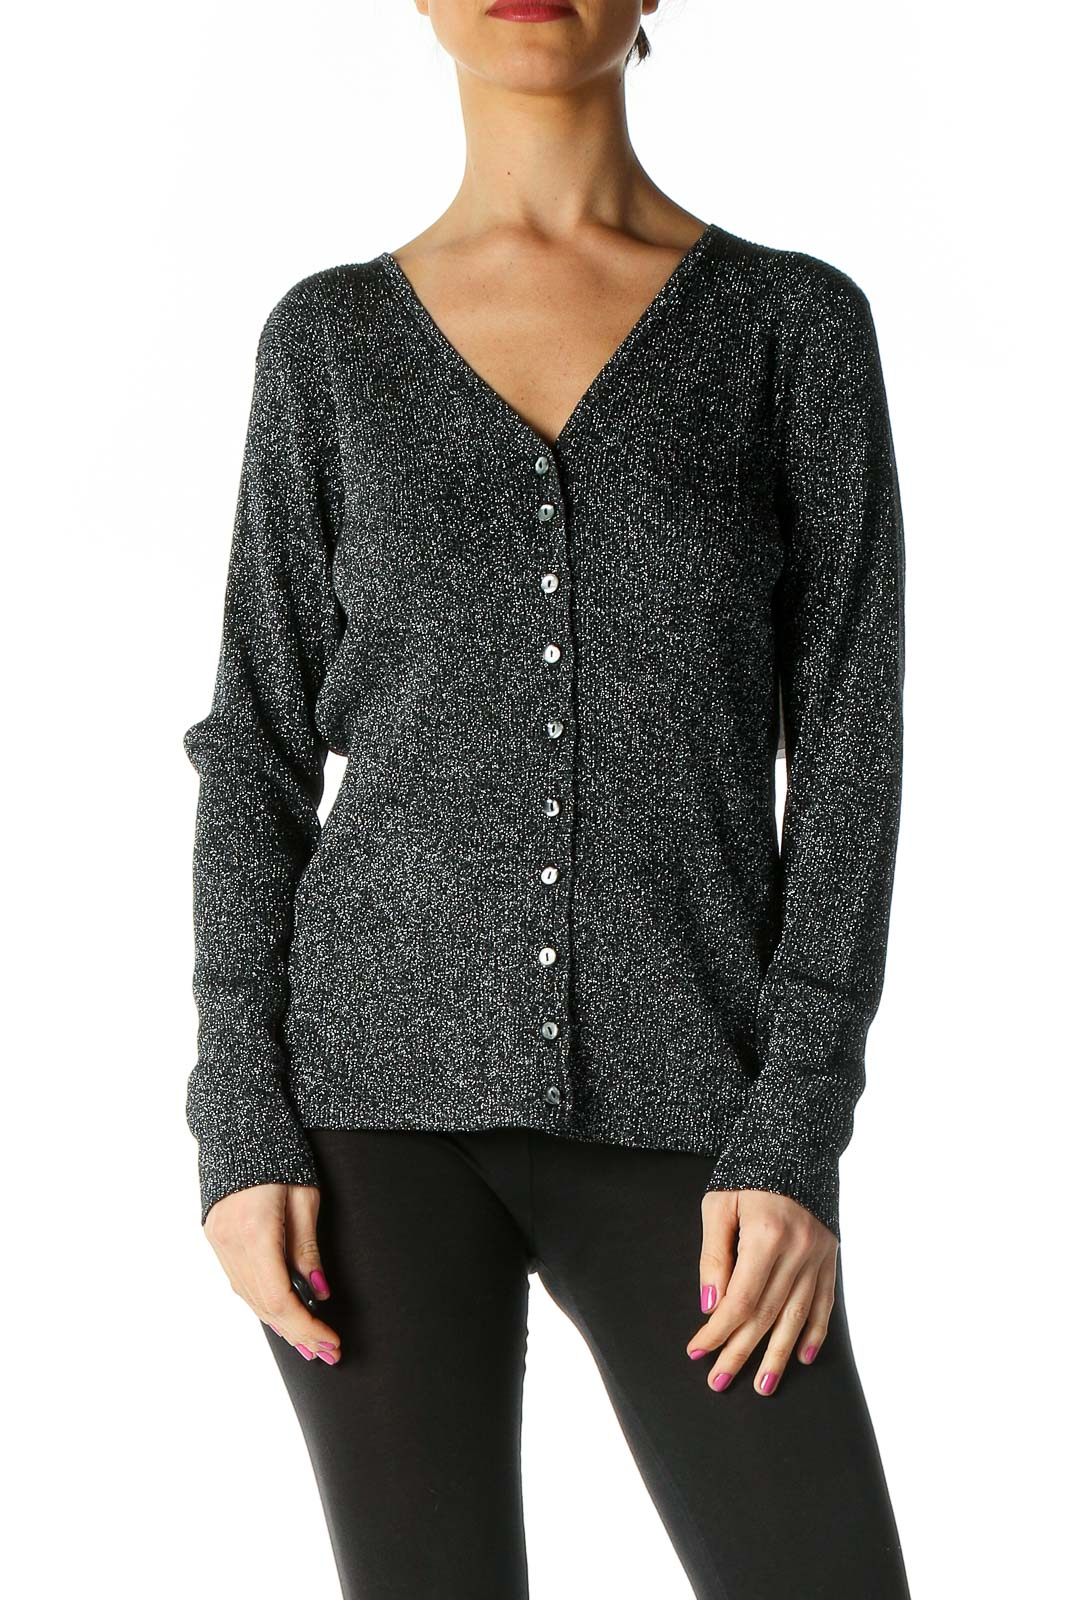 Black Textured Sweater Front